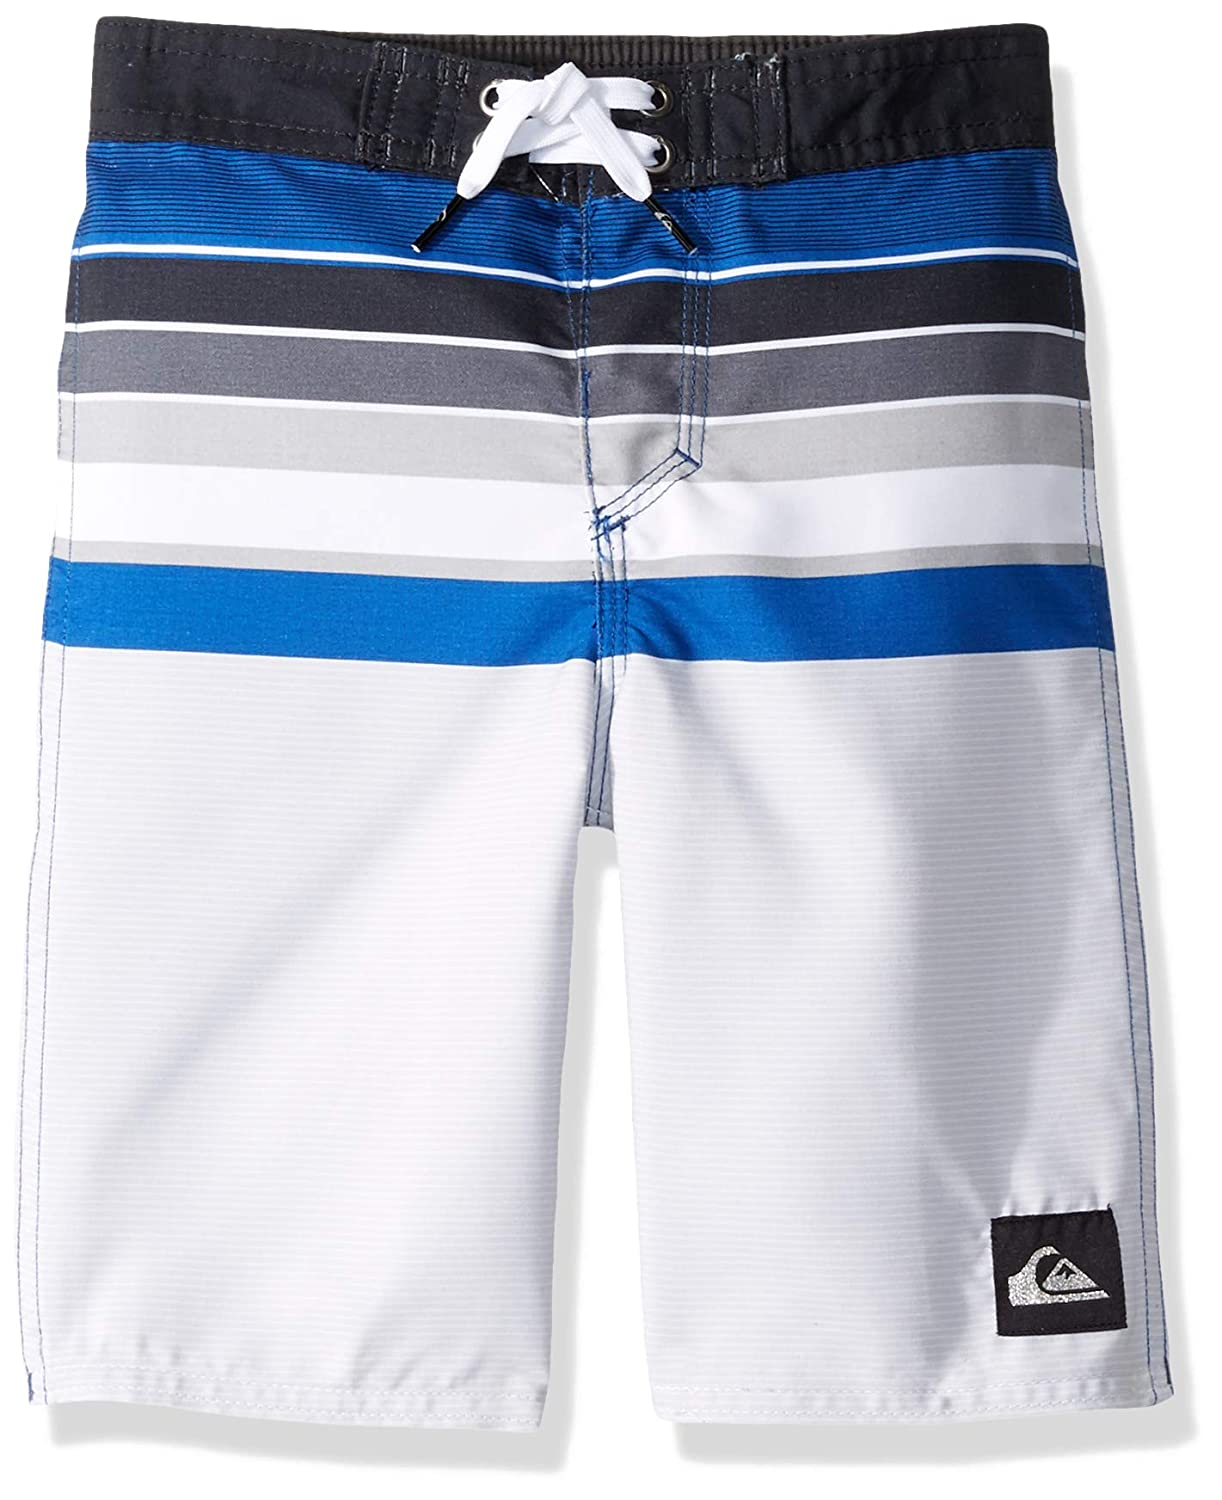 Quiksilver Children (youths) Everyday Swell Vision Boy 14 Electricroyal Boardshort Size 7X